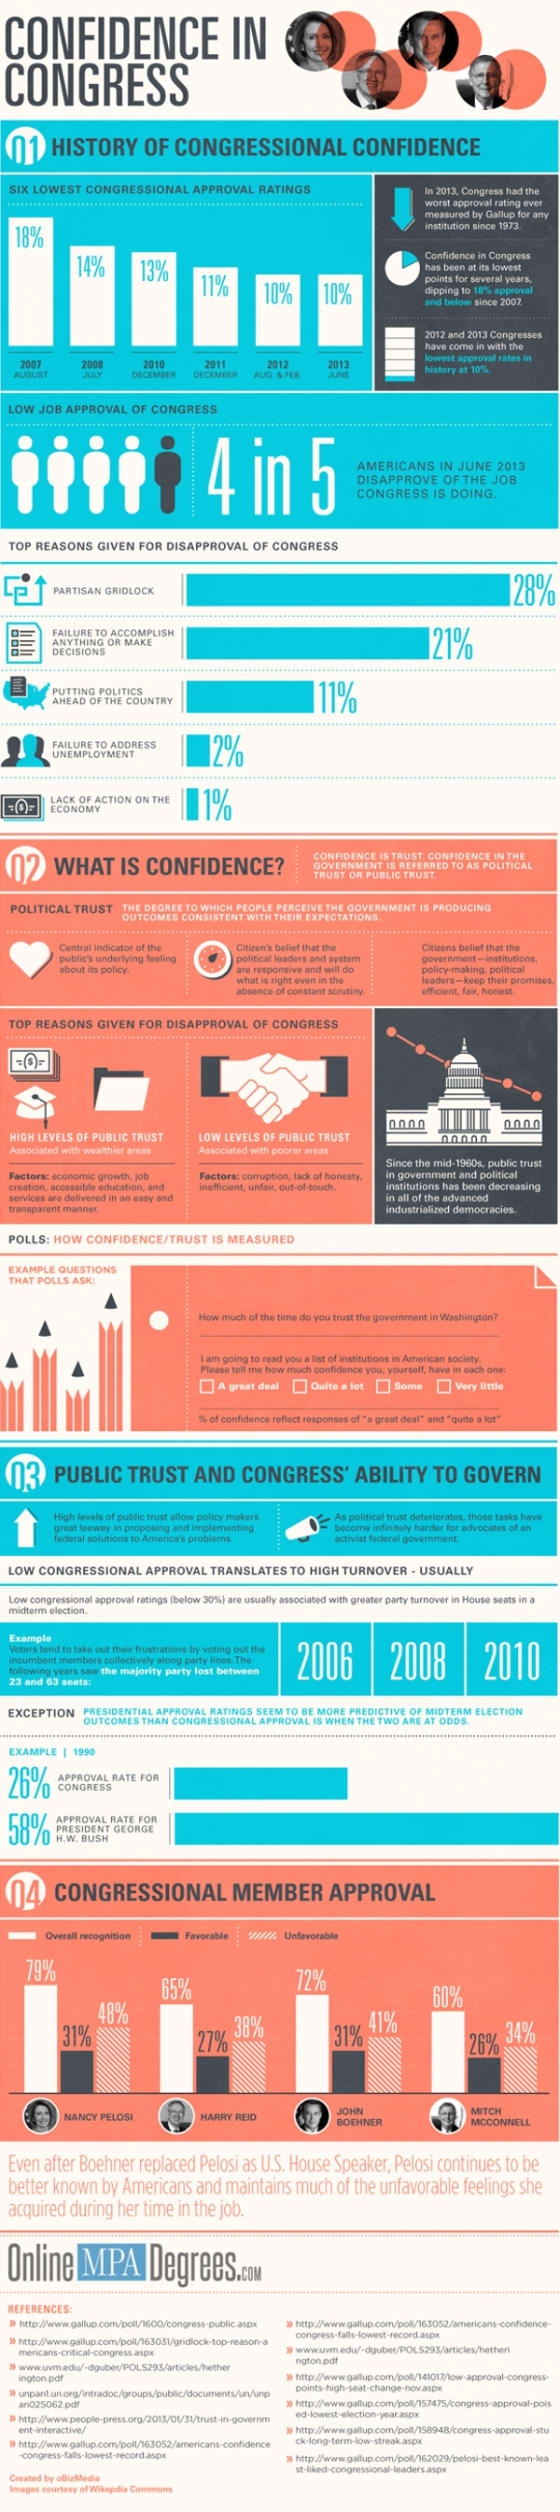 confidence-in-Government-Infographic